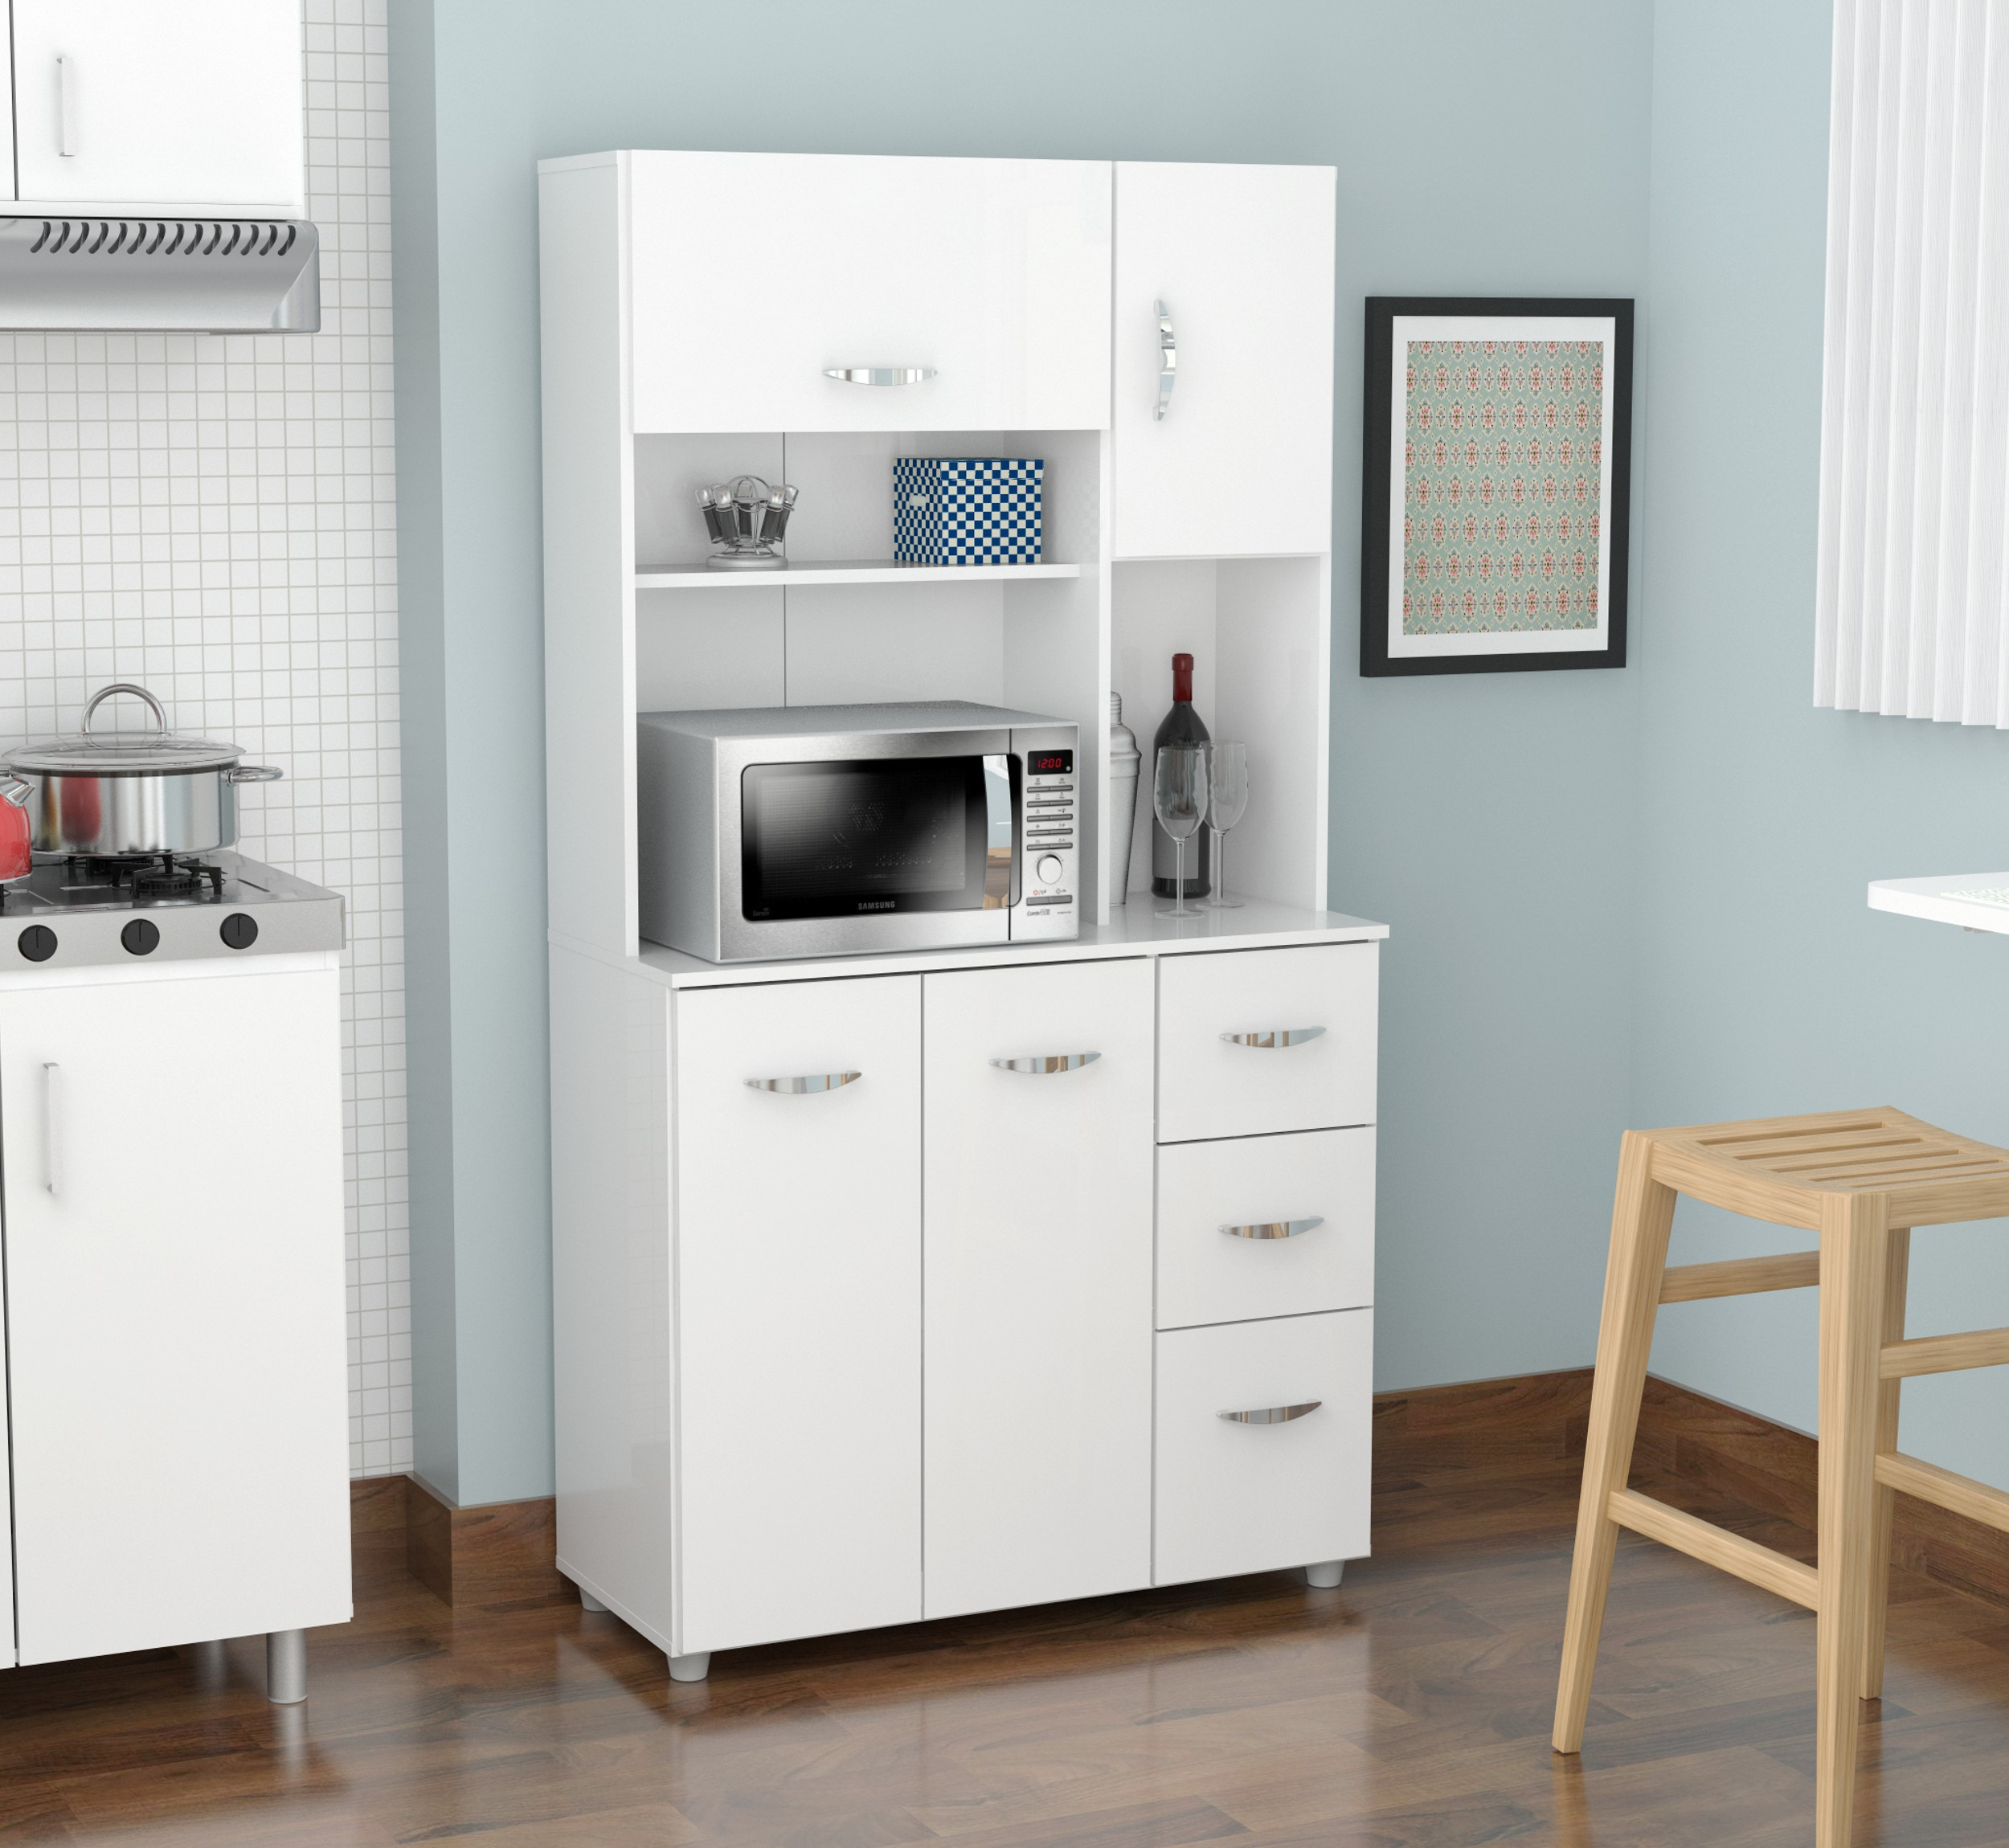 Inval Modern Laricina-white Kitchen Storage Cabinet